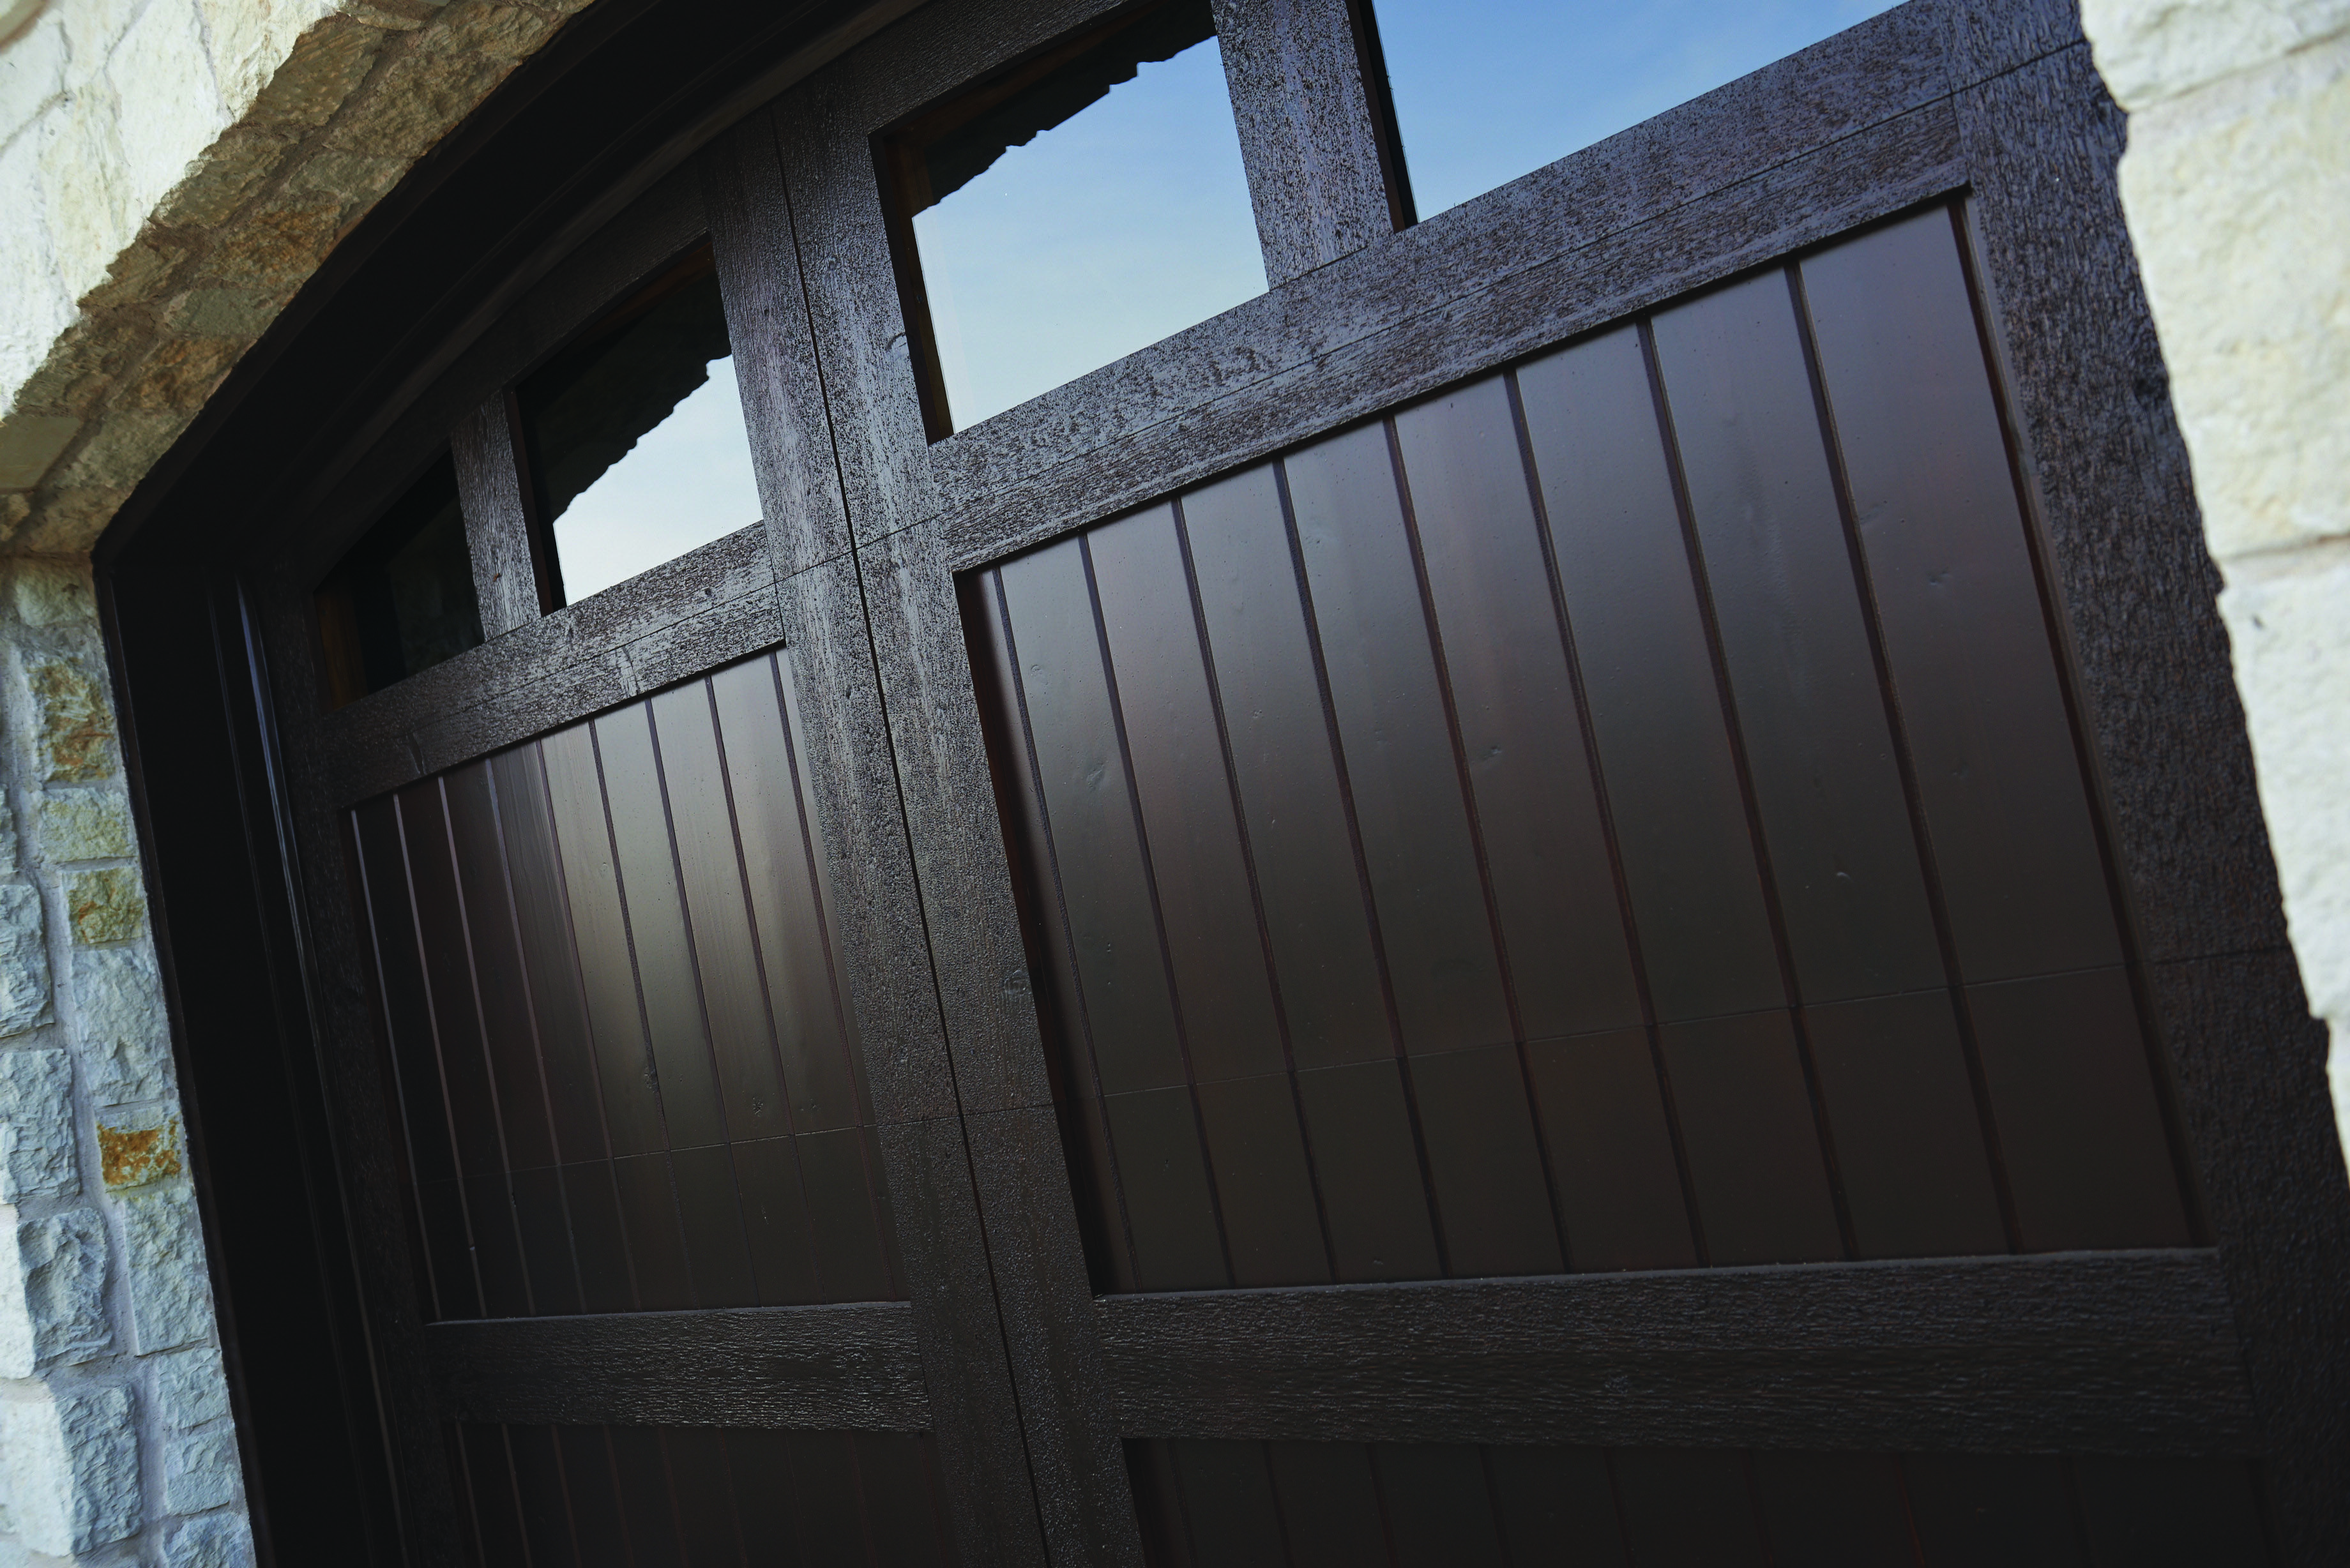 Sikkens Provides Unrivaled Looks Durability And Performance On All Types Of Exterior Wood Including Garage Doors Ht Staining Wood Stained Doors Wood Finish